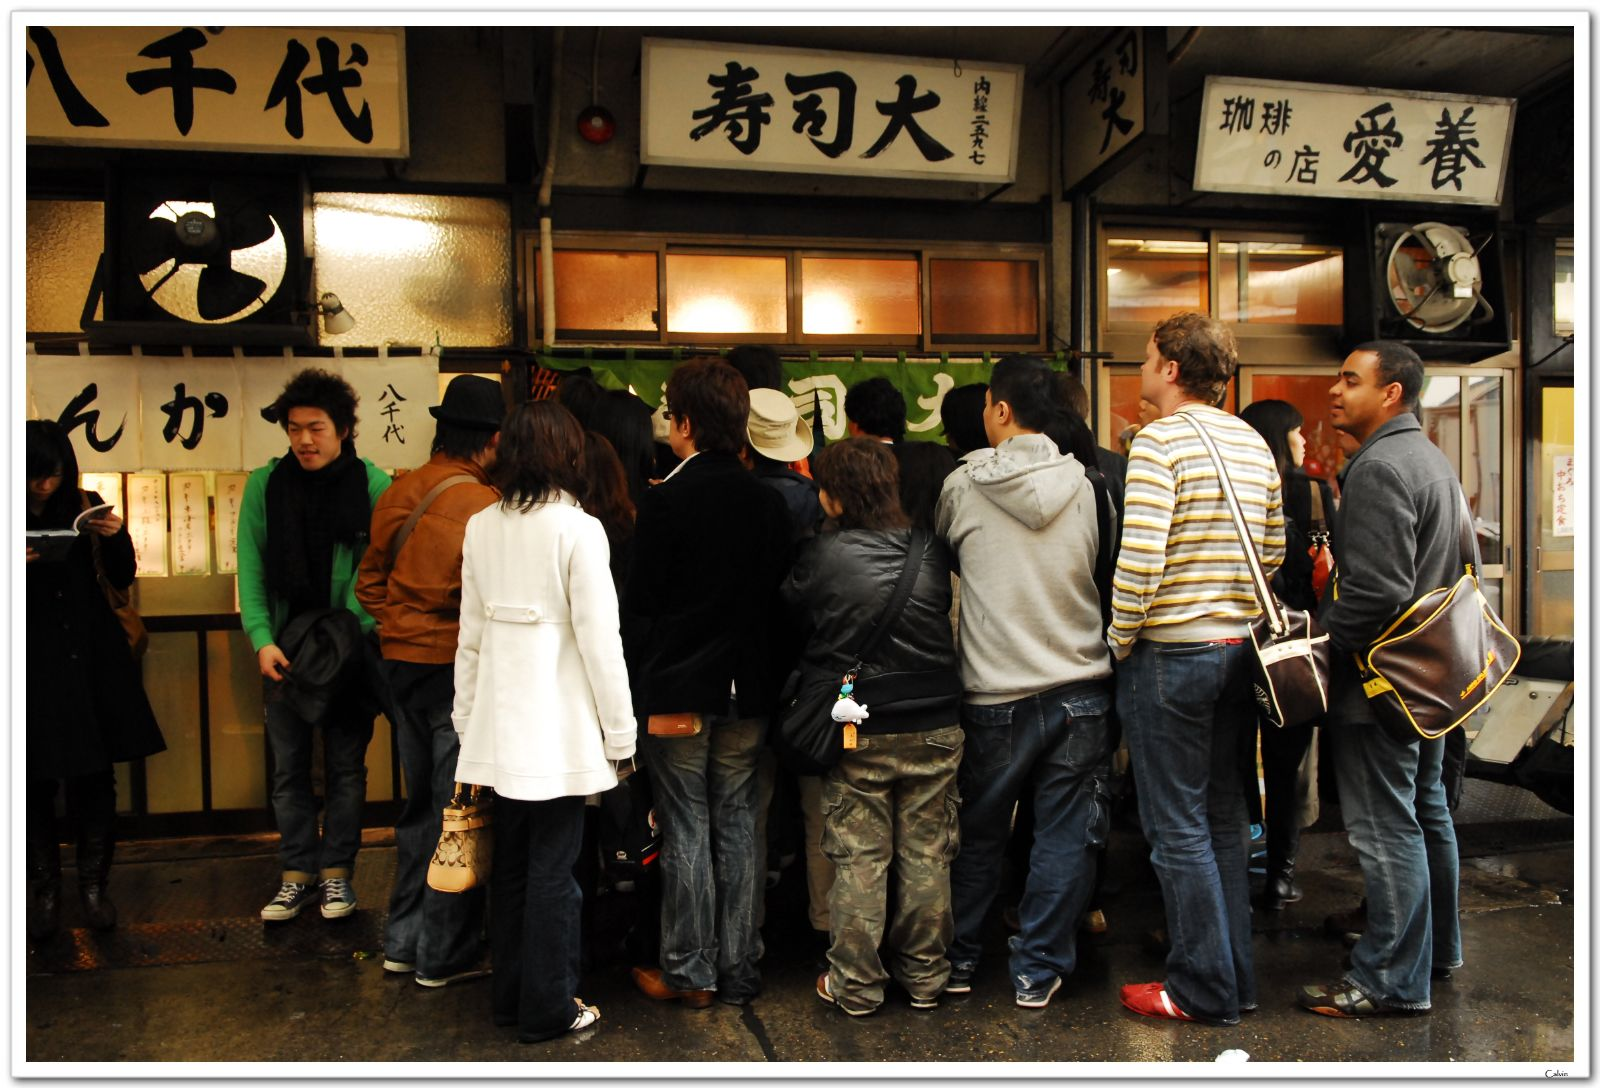 http://upload.wikimedia.org/wikipedia/commons/6/64/Sushi_restaurant_by_flyone_in_the_Tsukiji_Fish_Market,_Tokyo.jpg